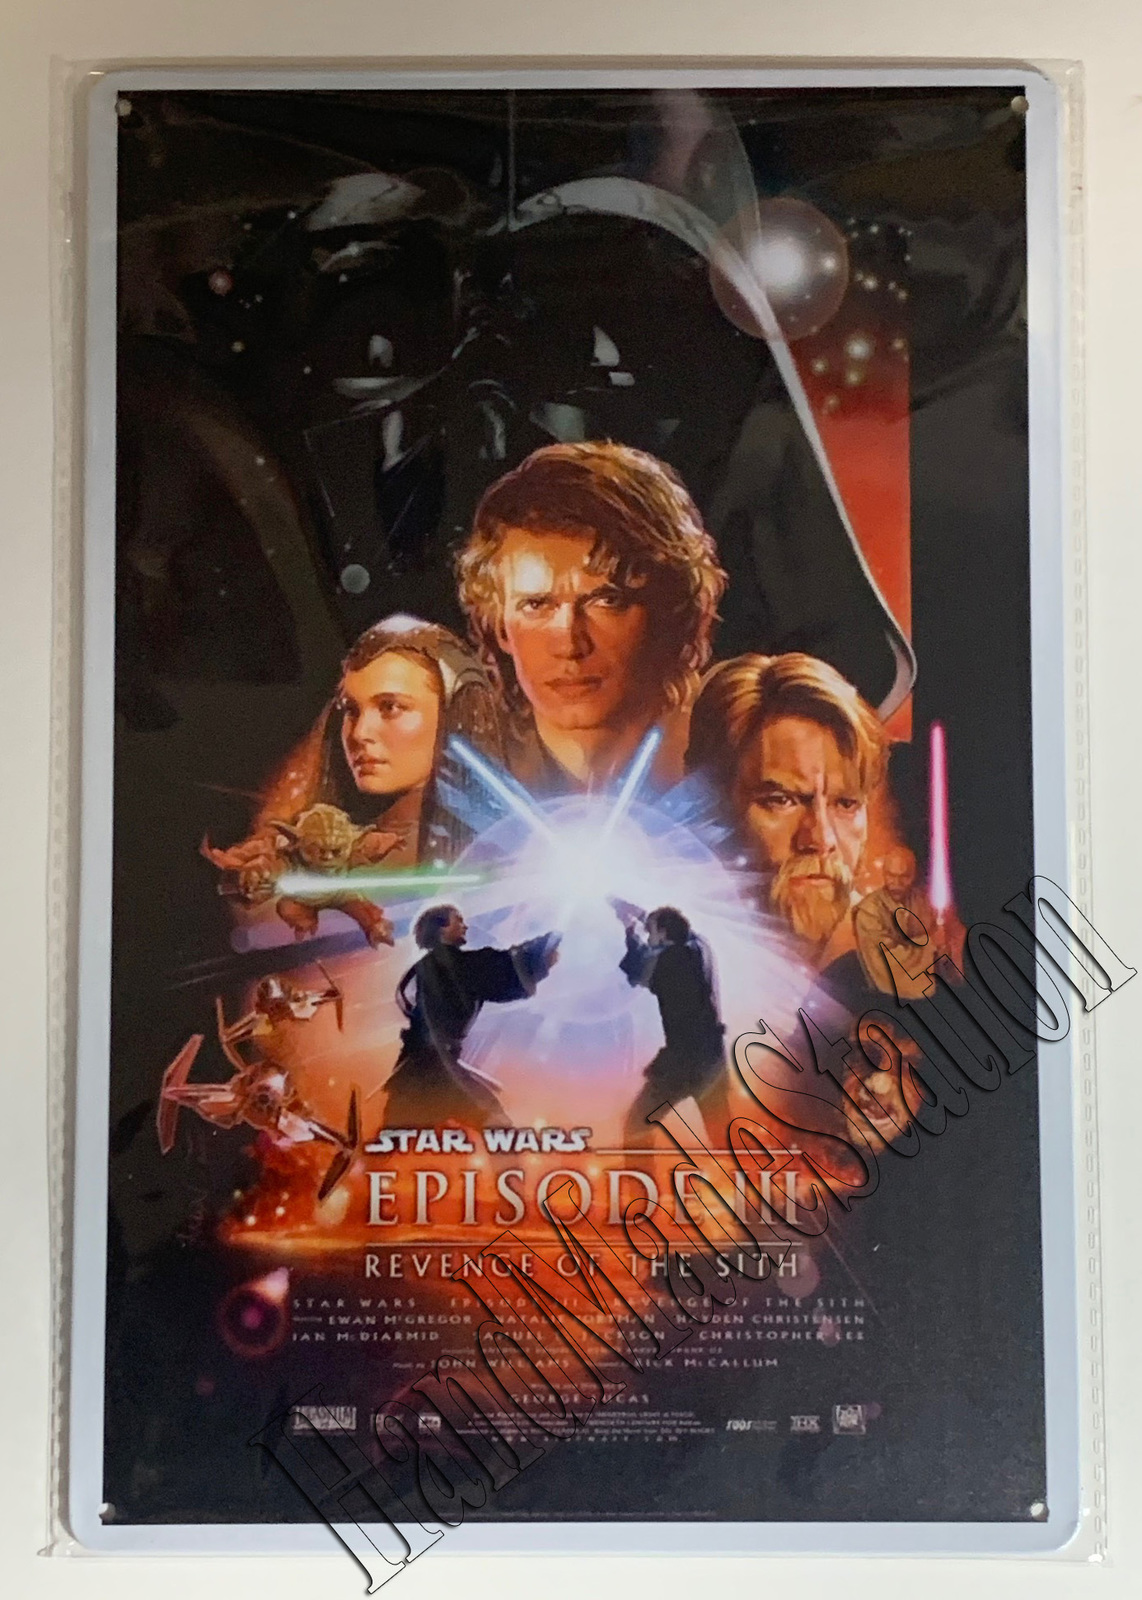 Star Wars Episode III Revenge of the Sith Wall Metal Sign plate Home decor 11.75